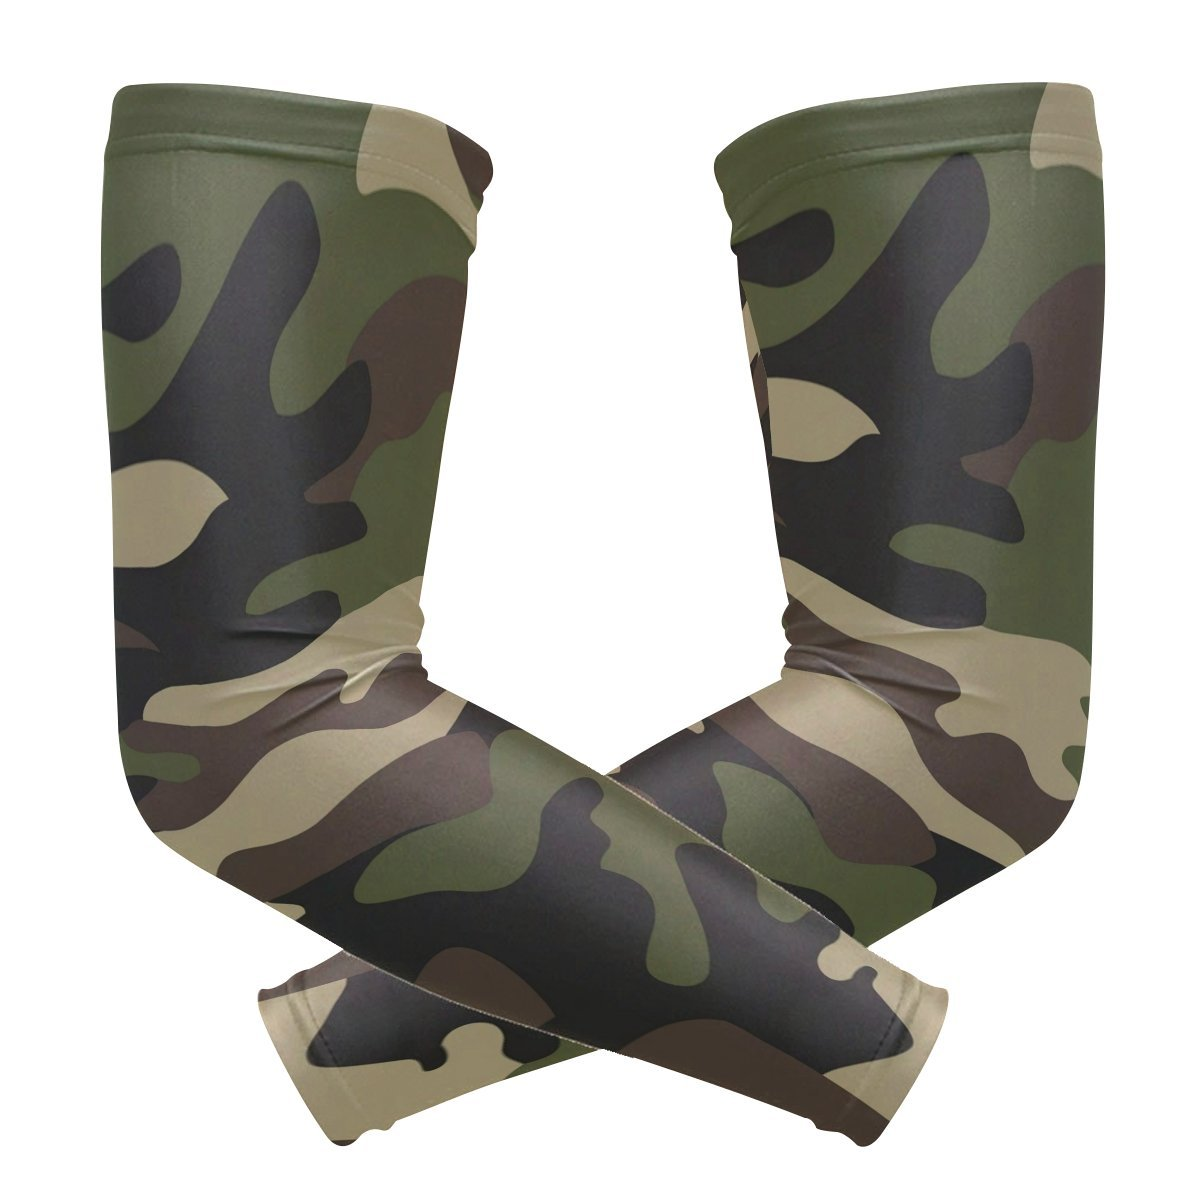 Wamika Arm Sleeve for Men Women Camouflage Green Forest UV Protection Cooling Long Sports Compression Arms Cover Tattoo Sleeves Perfect for Baseball Football Basketball Running 1 Pair